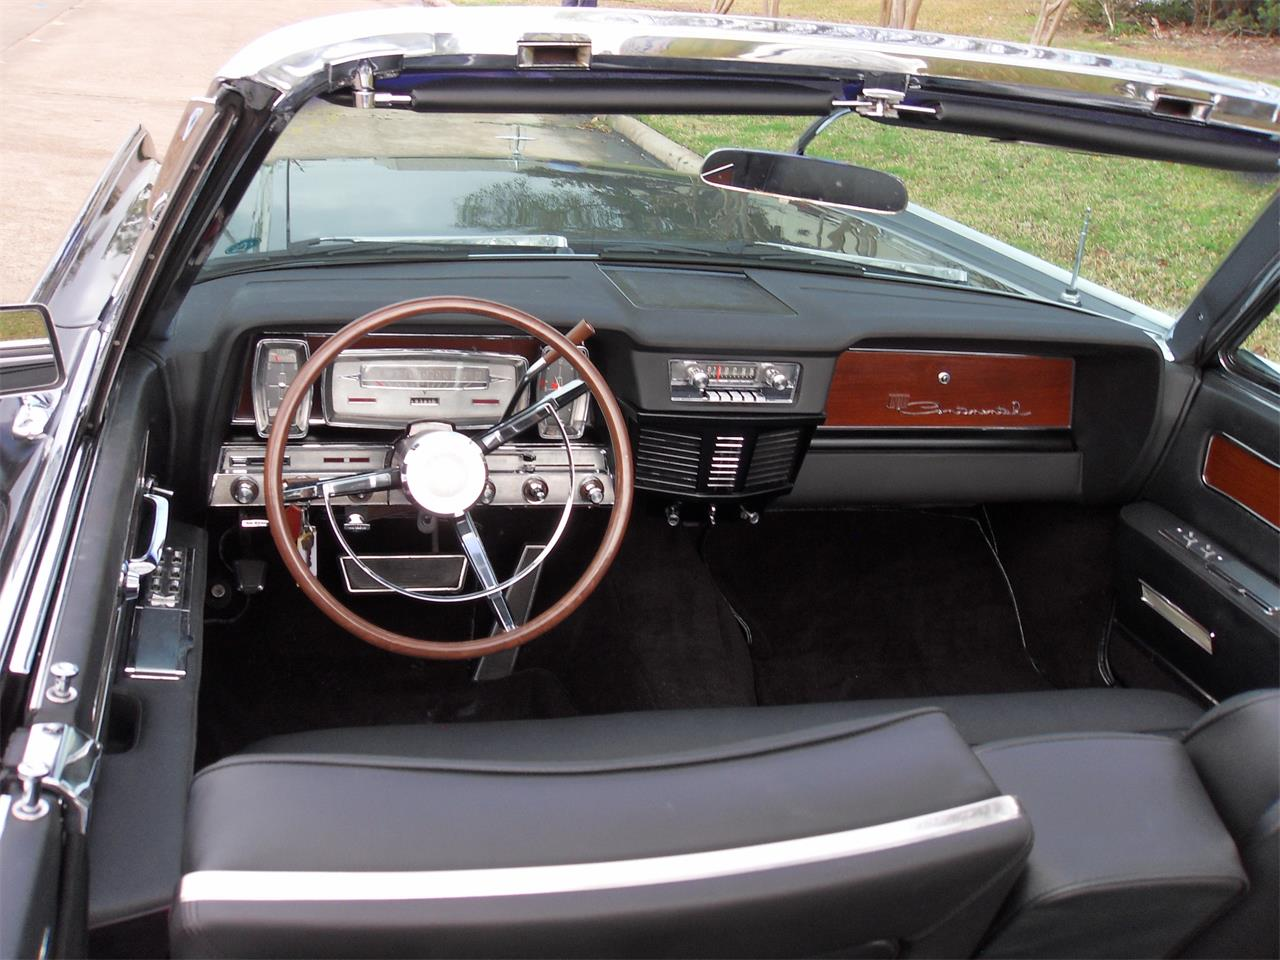 1963 Lincoln Continental (CC-1321471) for sale in HOUSTON, Texas